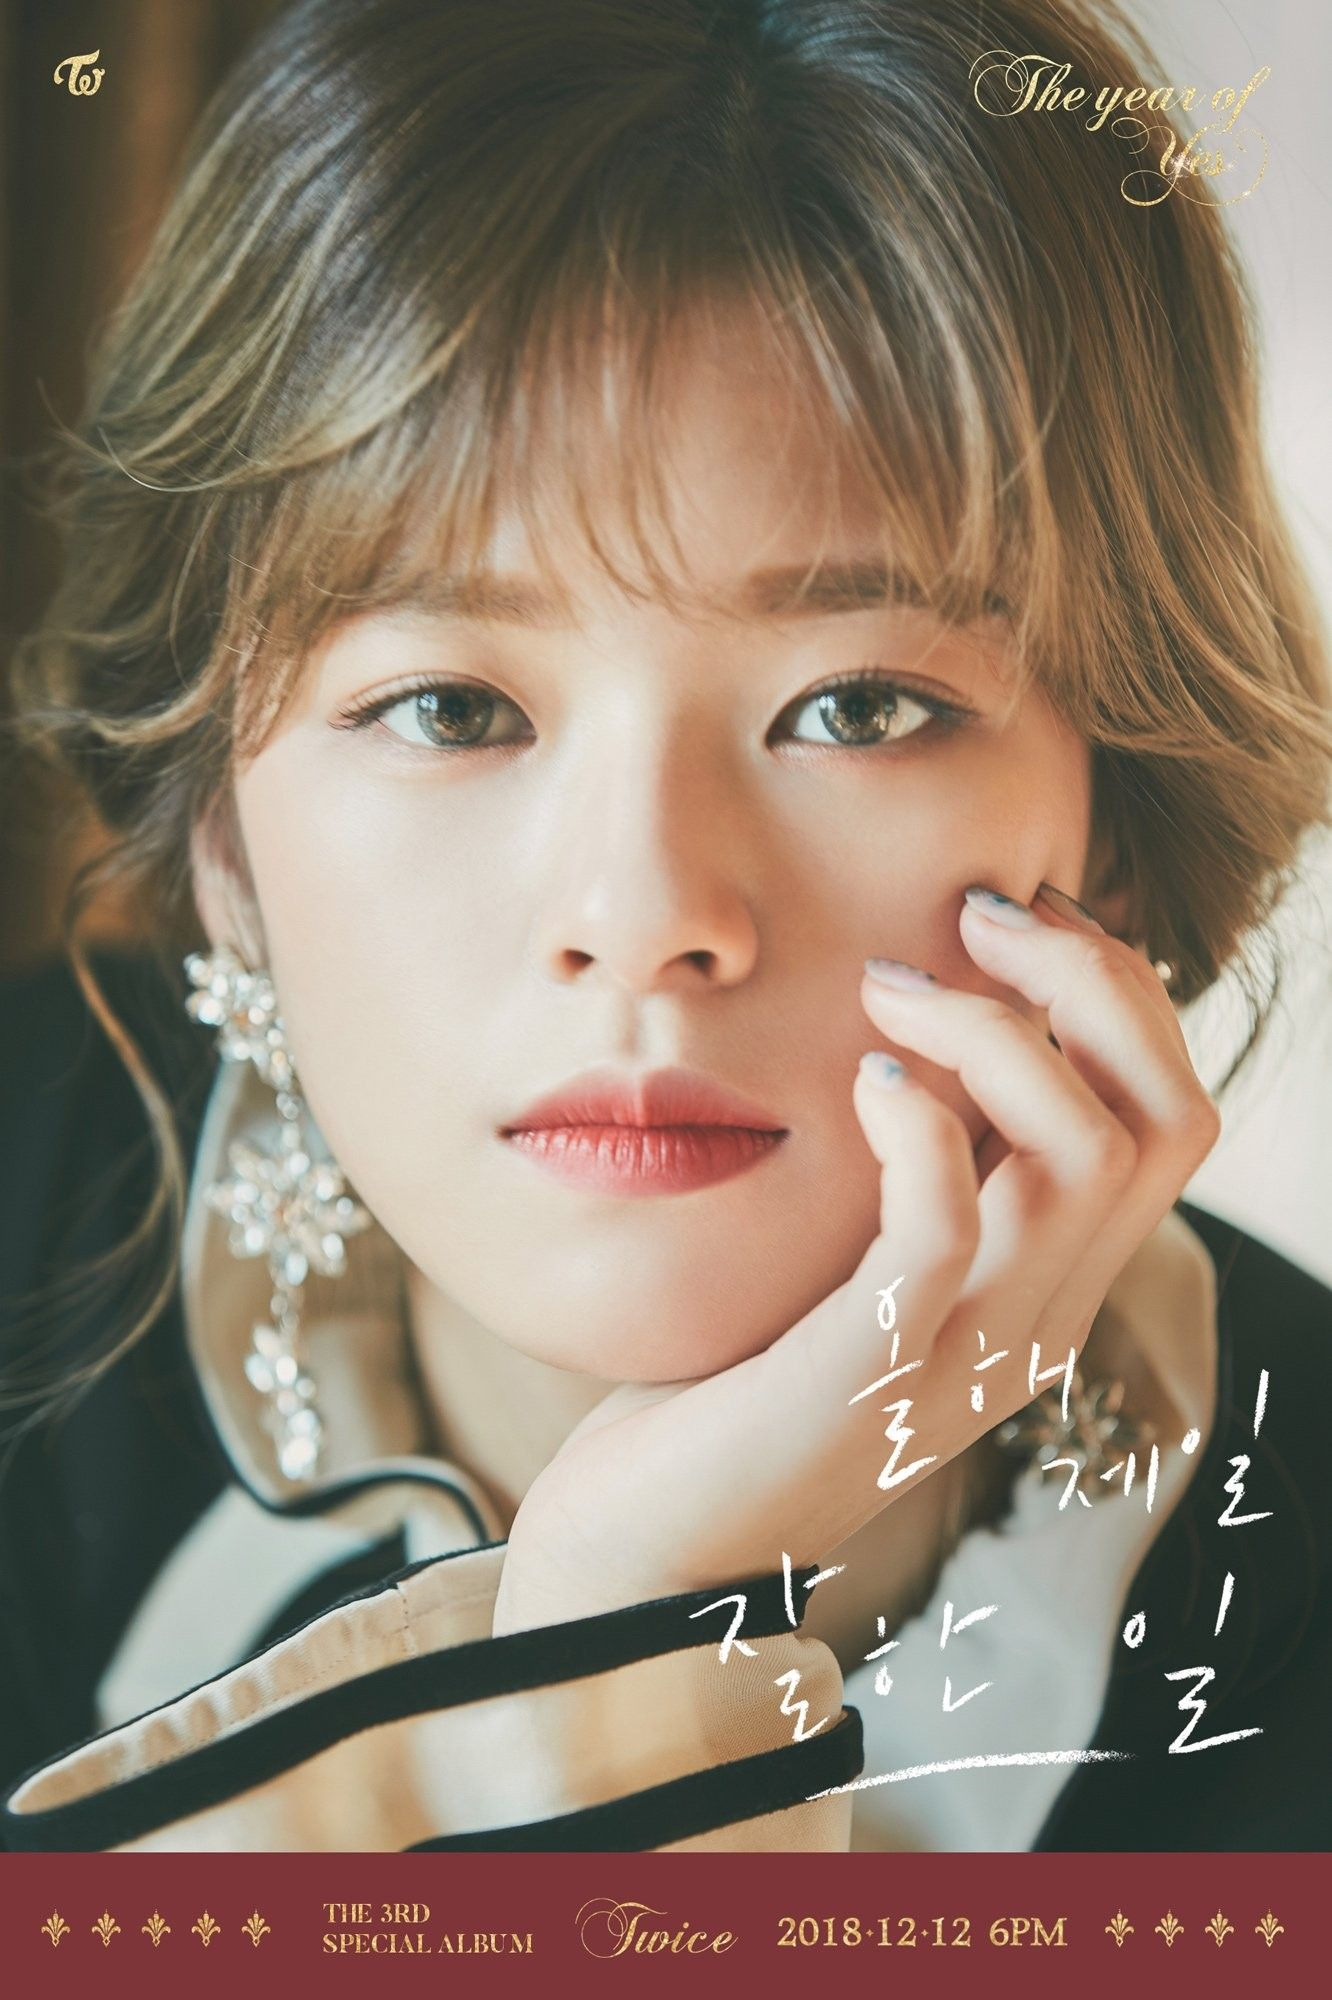 Twice Jeongyeon The Year Of Yes The Best Thing I Ever Did